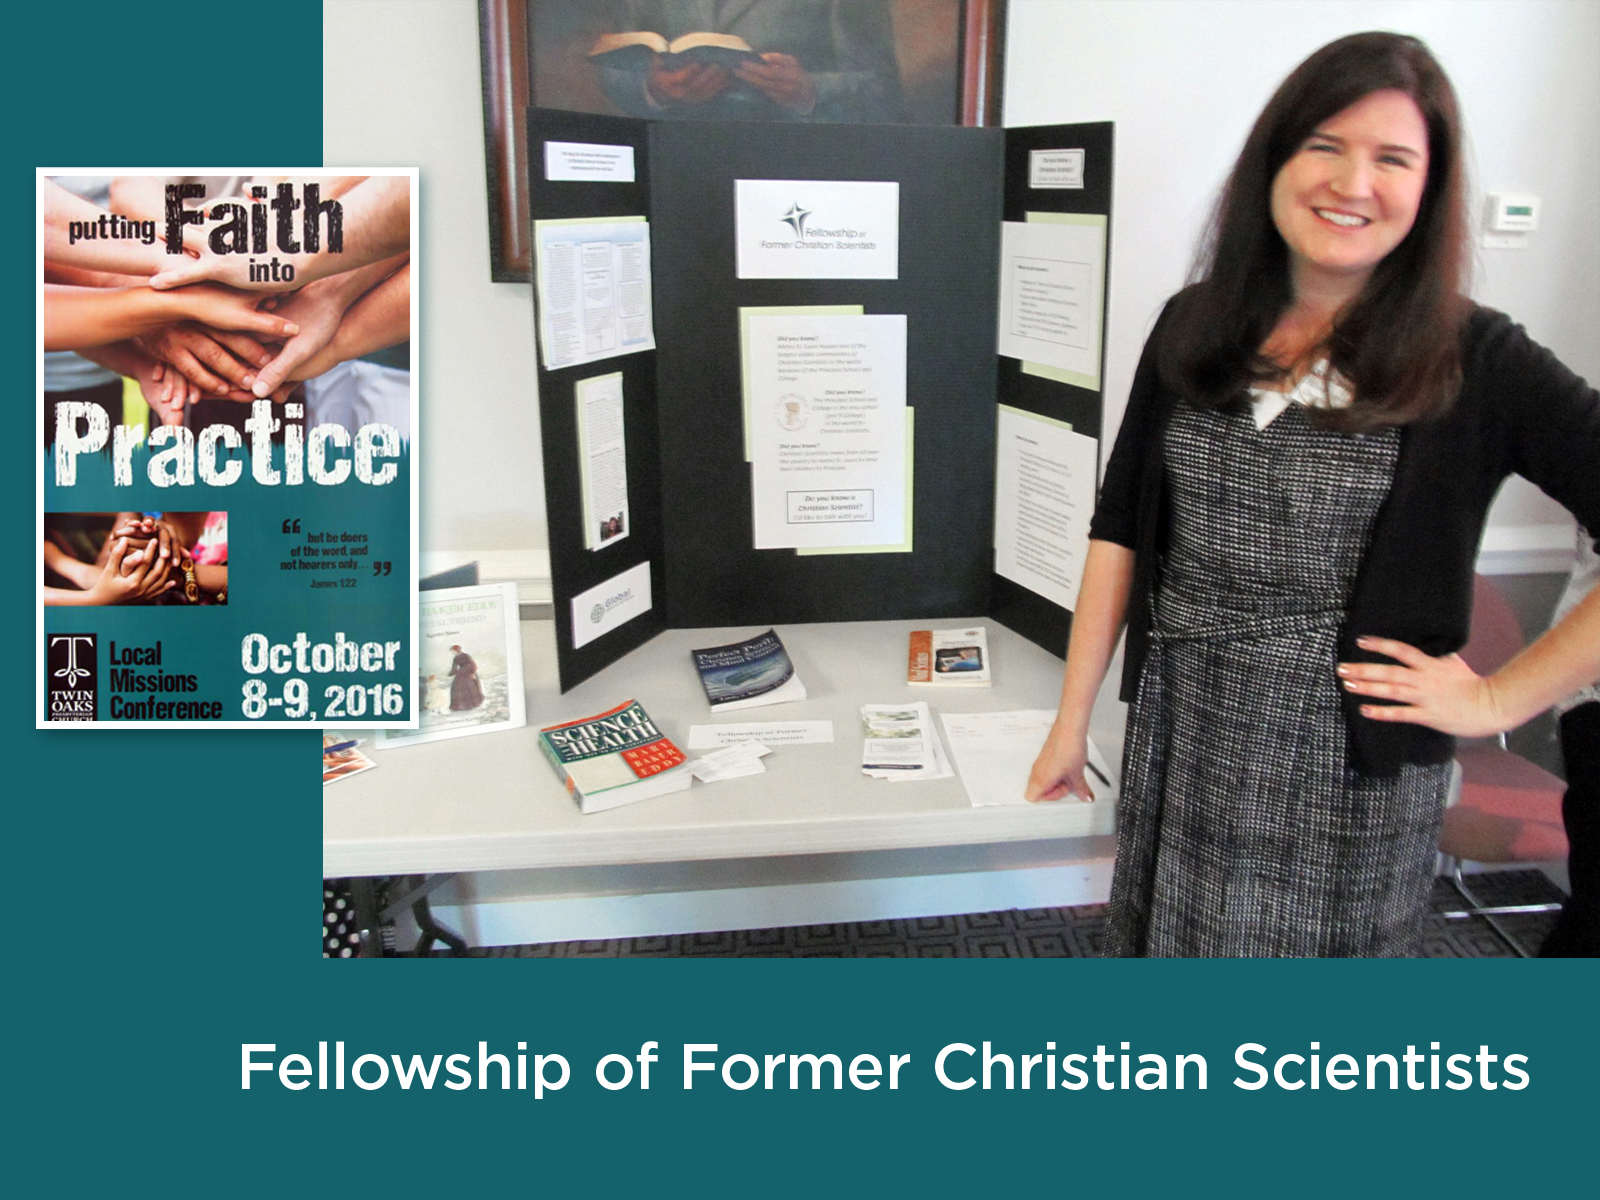 Fellowship Of Former Christian Scientists 1.jpg